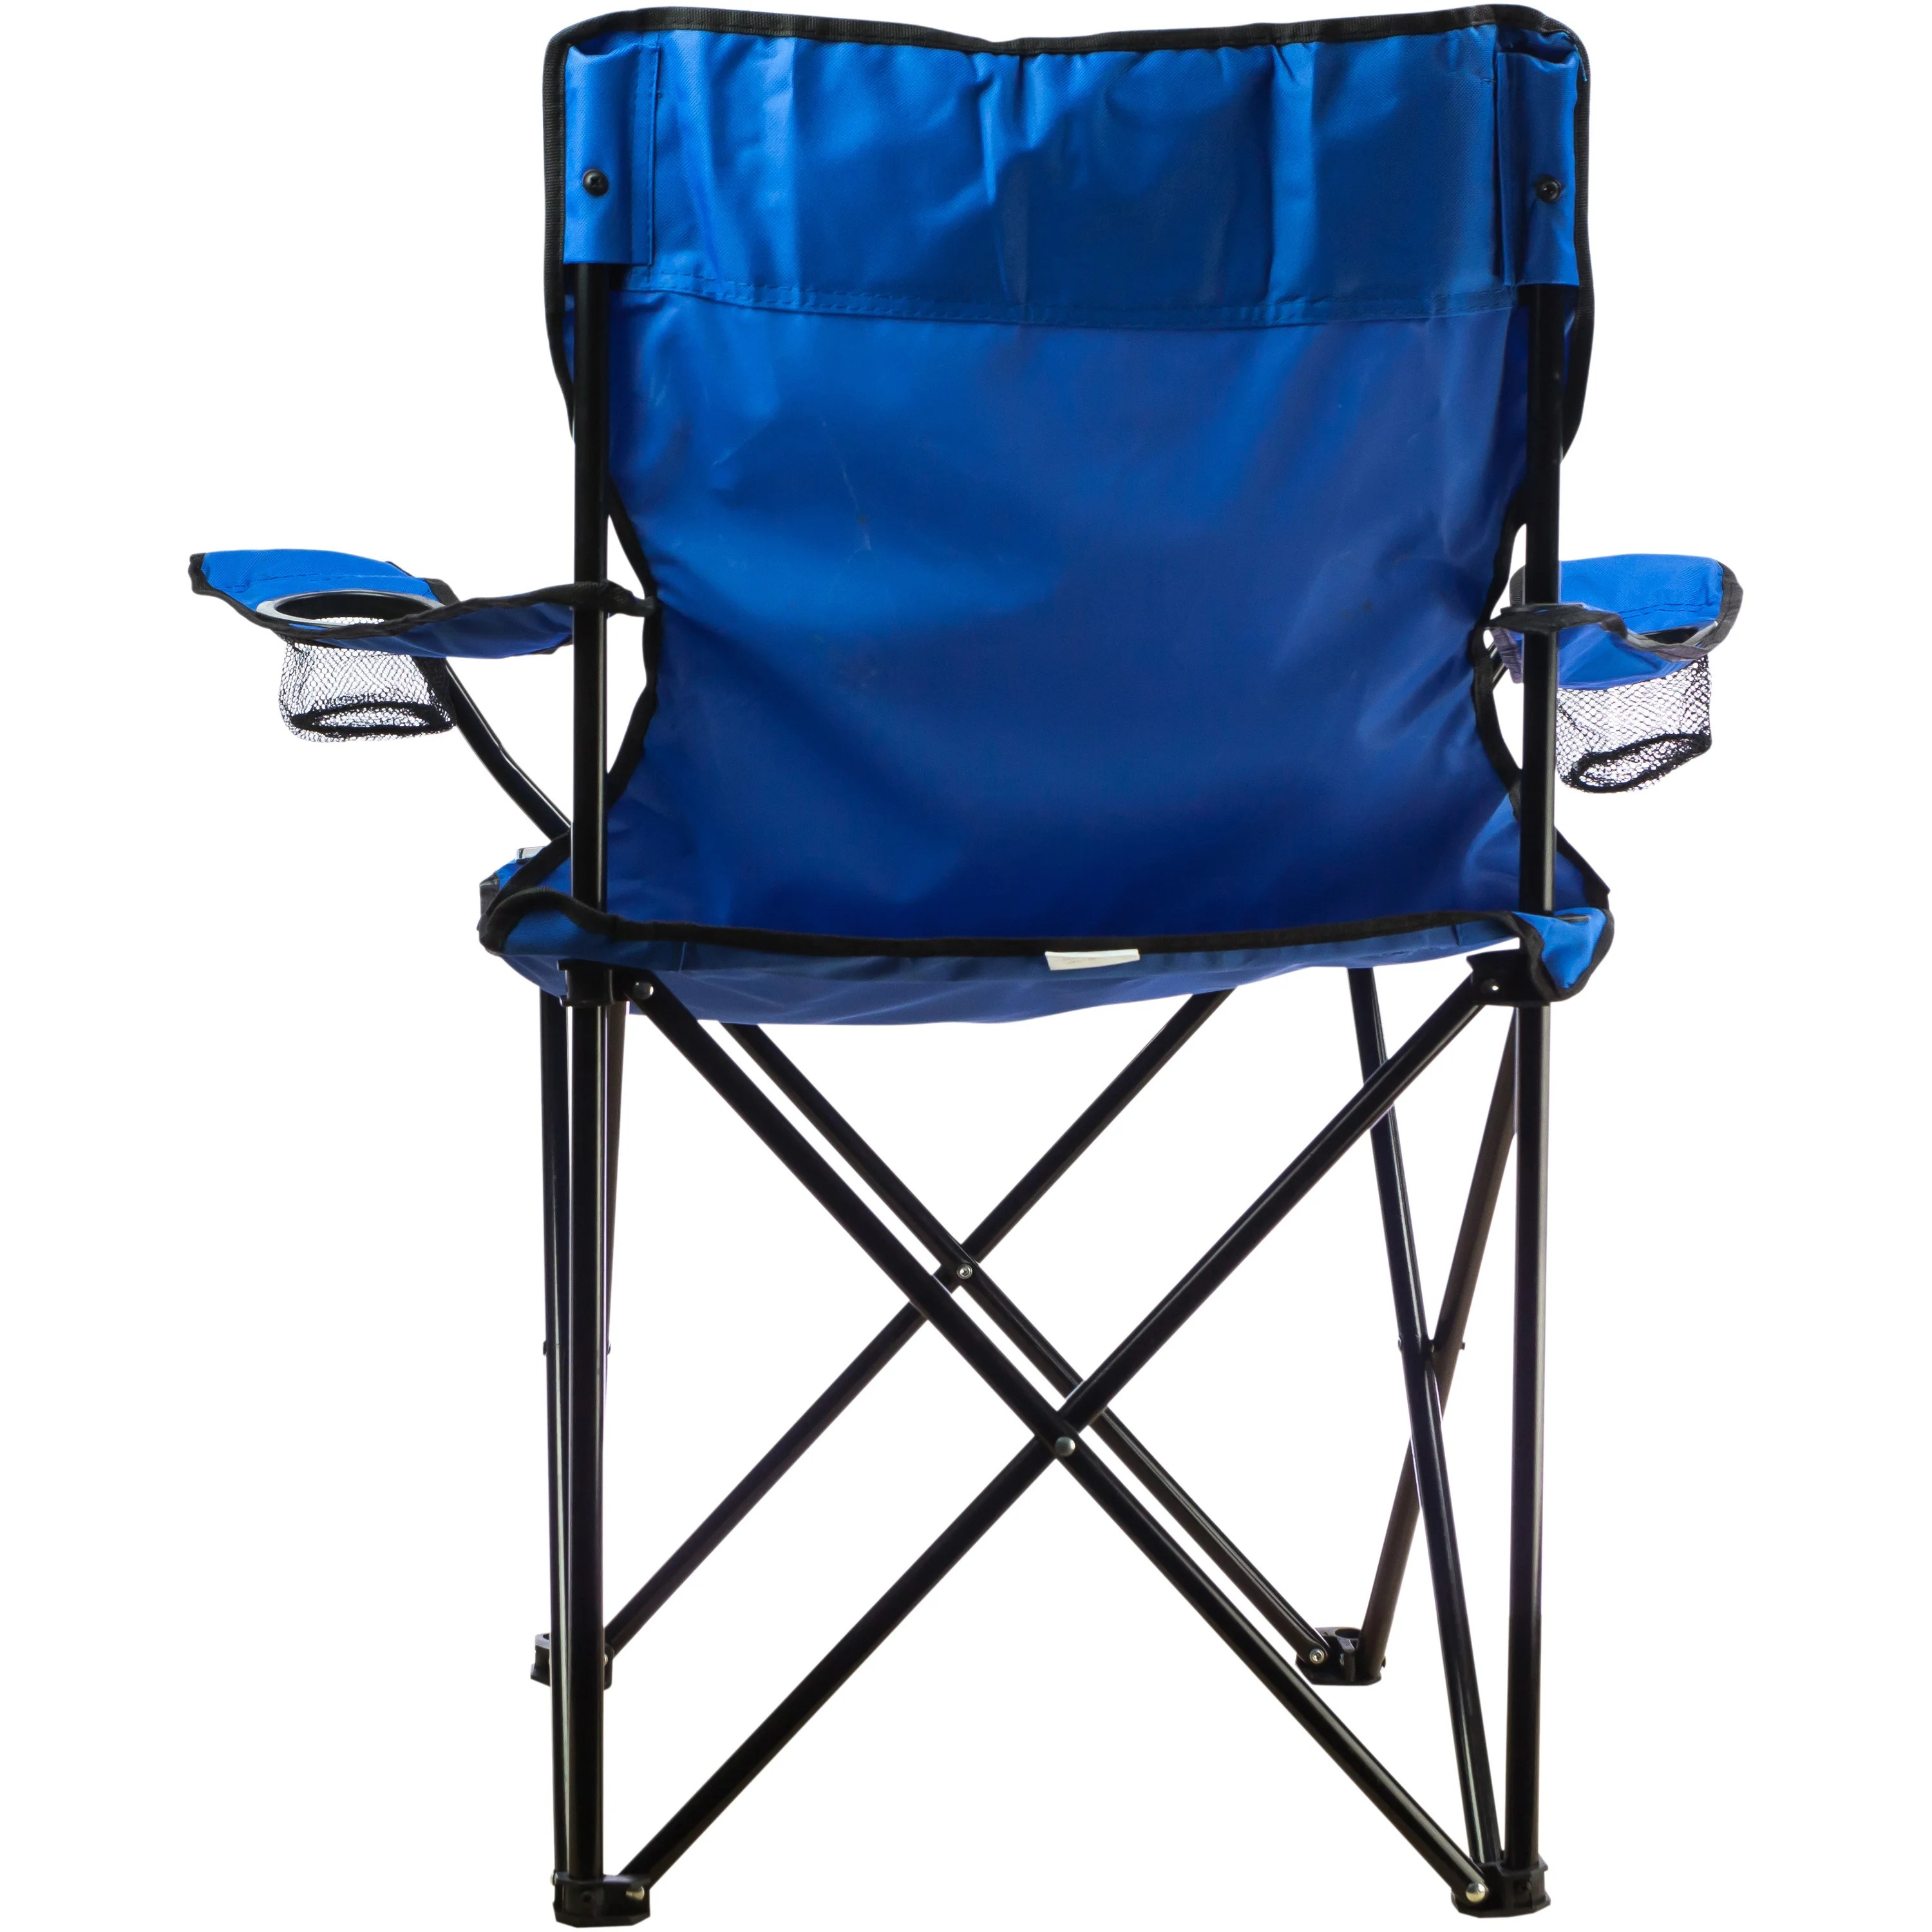 Collapsible Chair Folding Chair With Carrying Bag